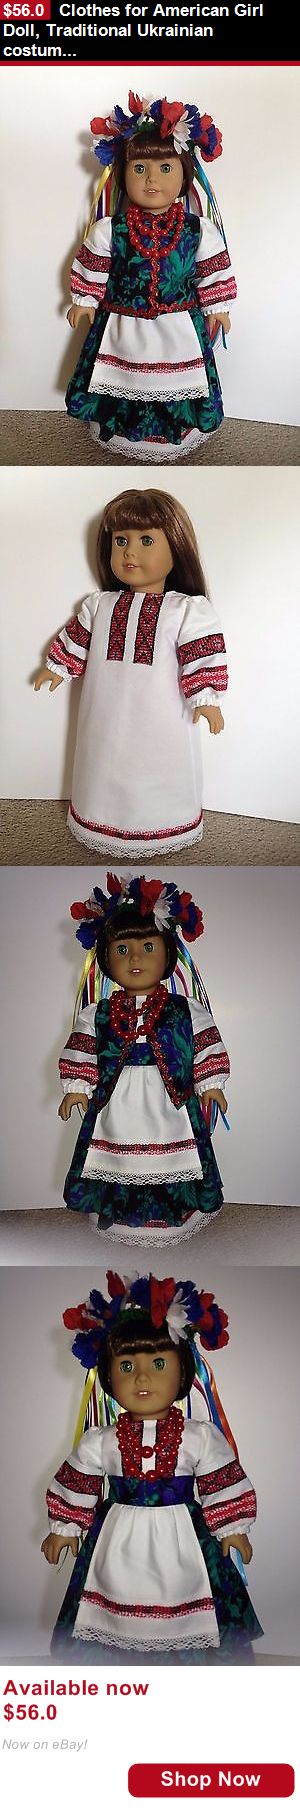 Telescope Cases And Bags: Clothes For American Girl Doll, Traditional Ukrainian Costume, Fits 18 Doll BUY IT NOW ONLY: $56.0